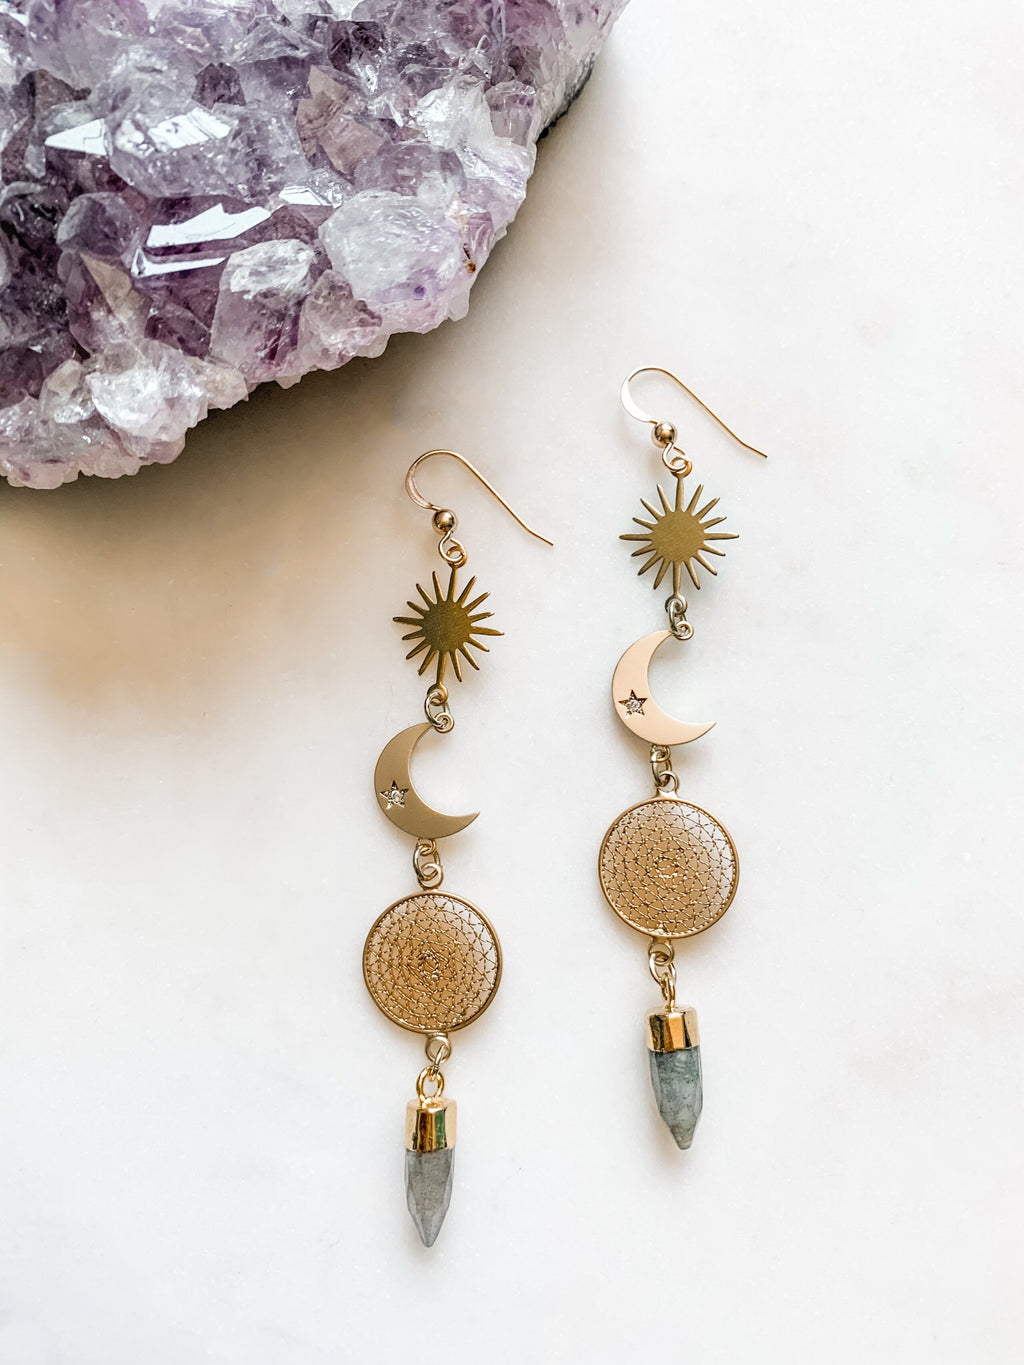 Nightfall - Labradorite Moon Drop Earrings - The Pretty Eclectic